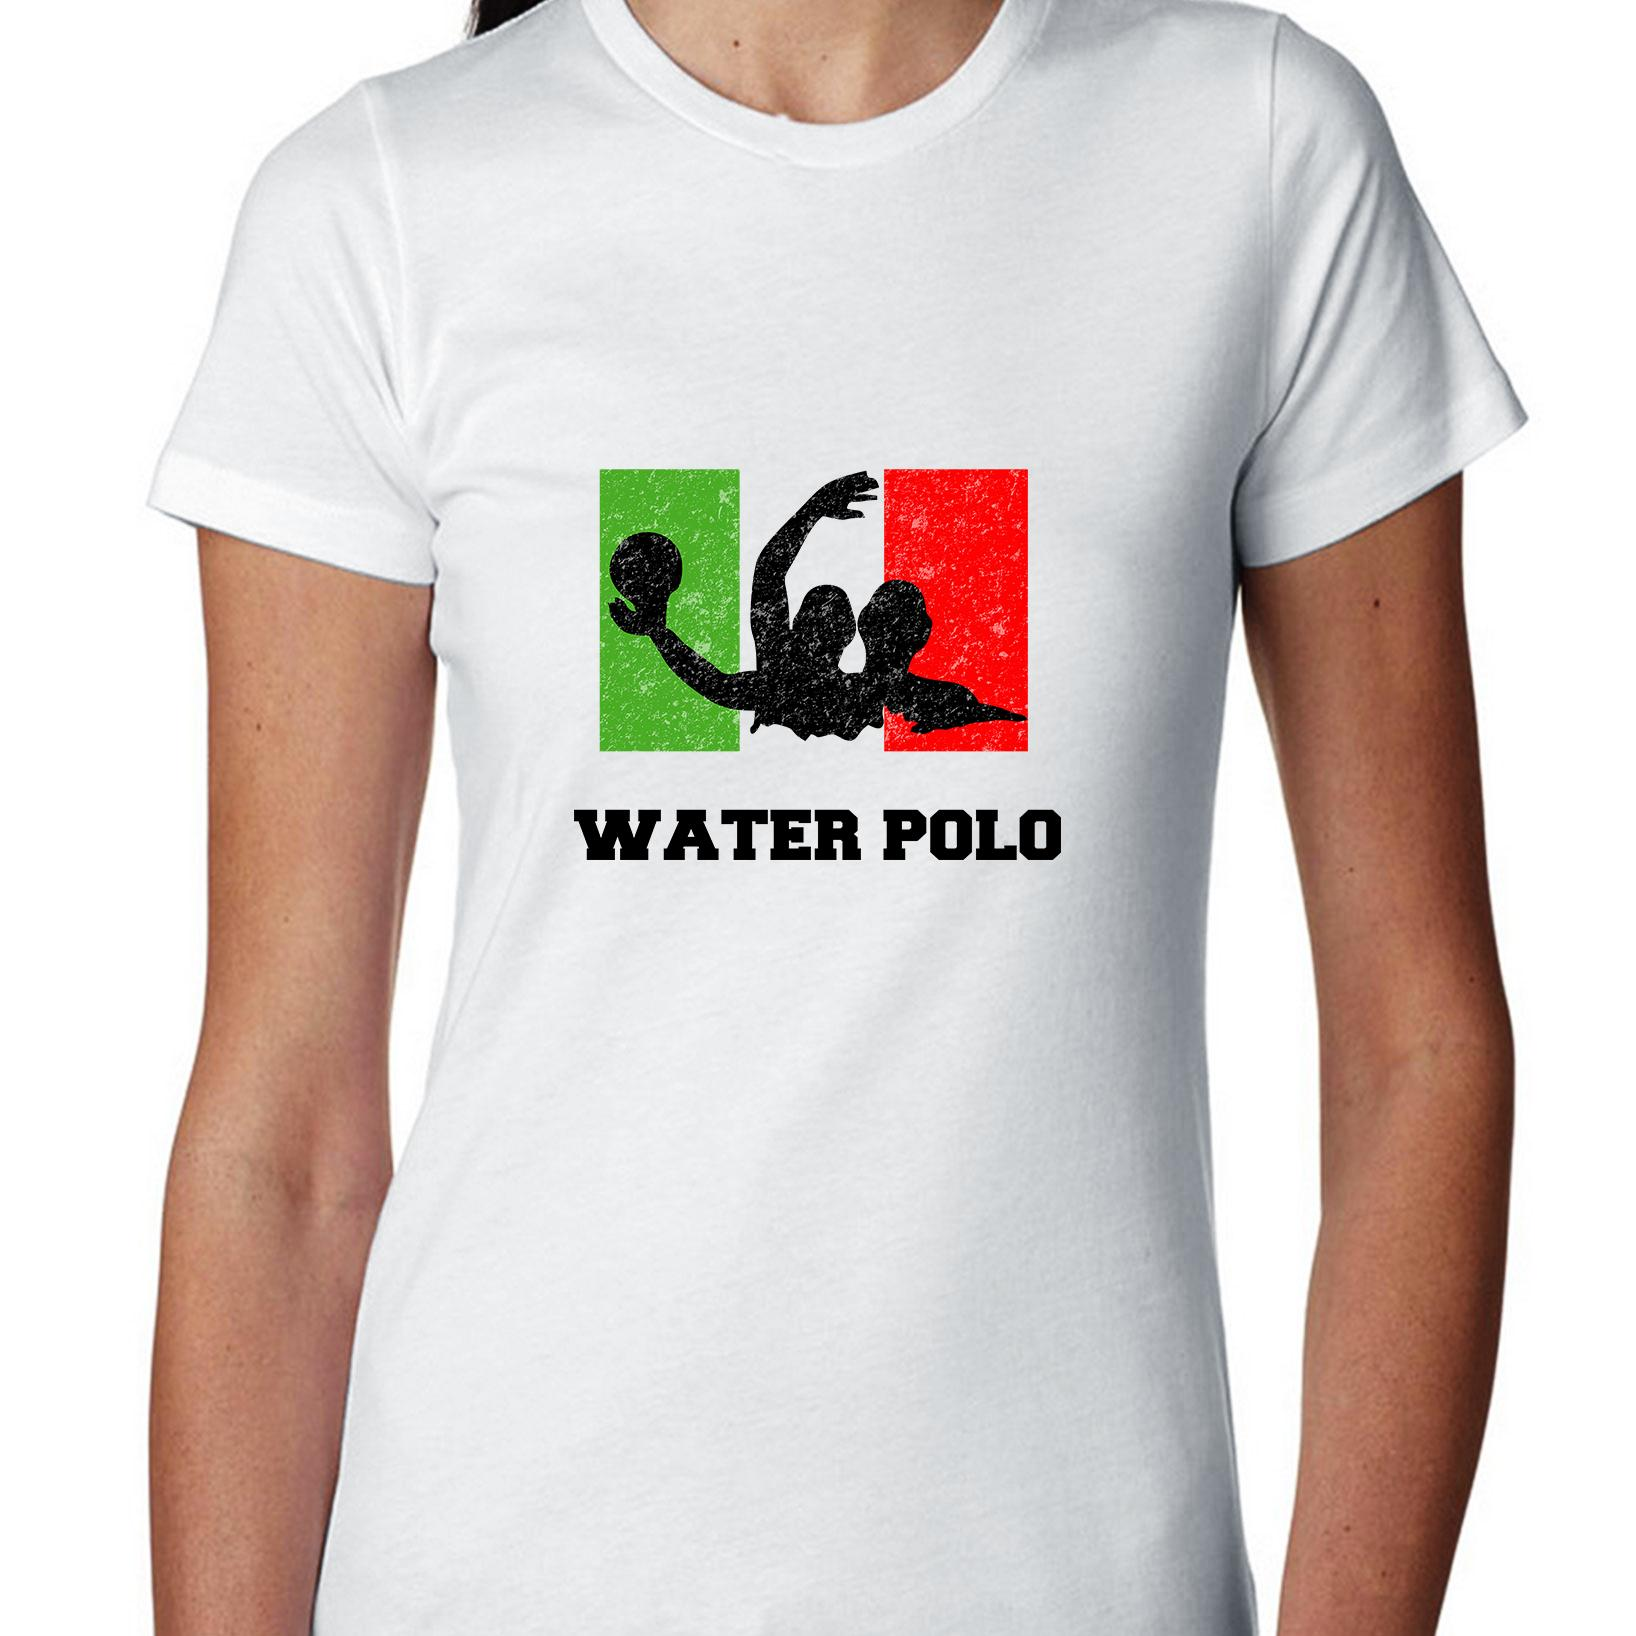 Italy Olympic Water Polo Flag Silhouette Women's Cotton T-Shirt by Hollywood Thread